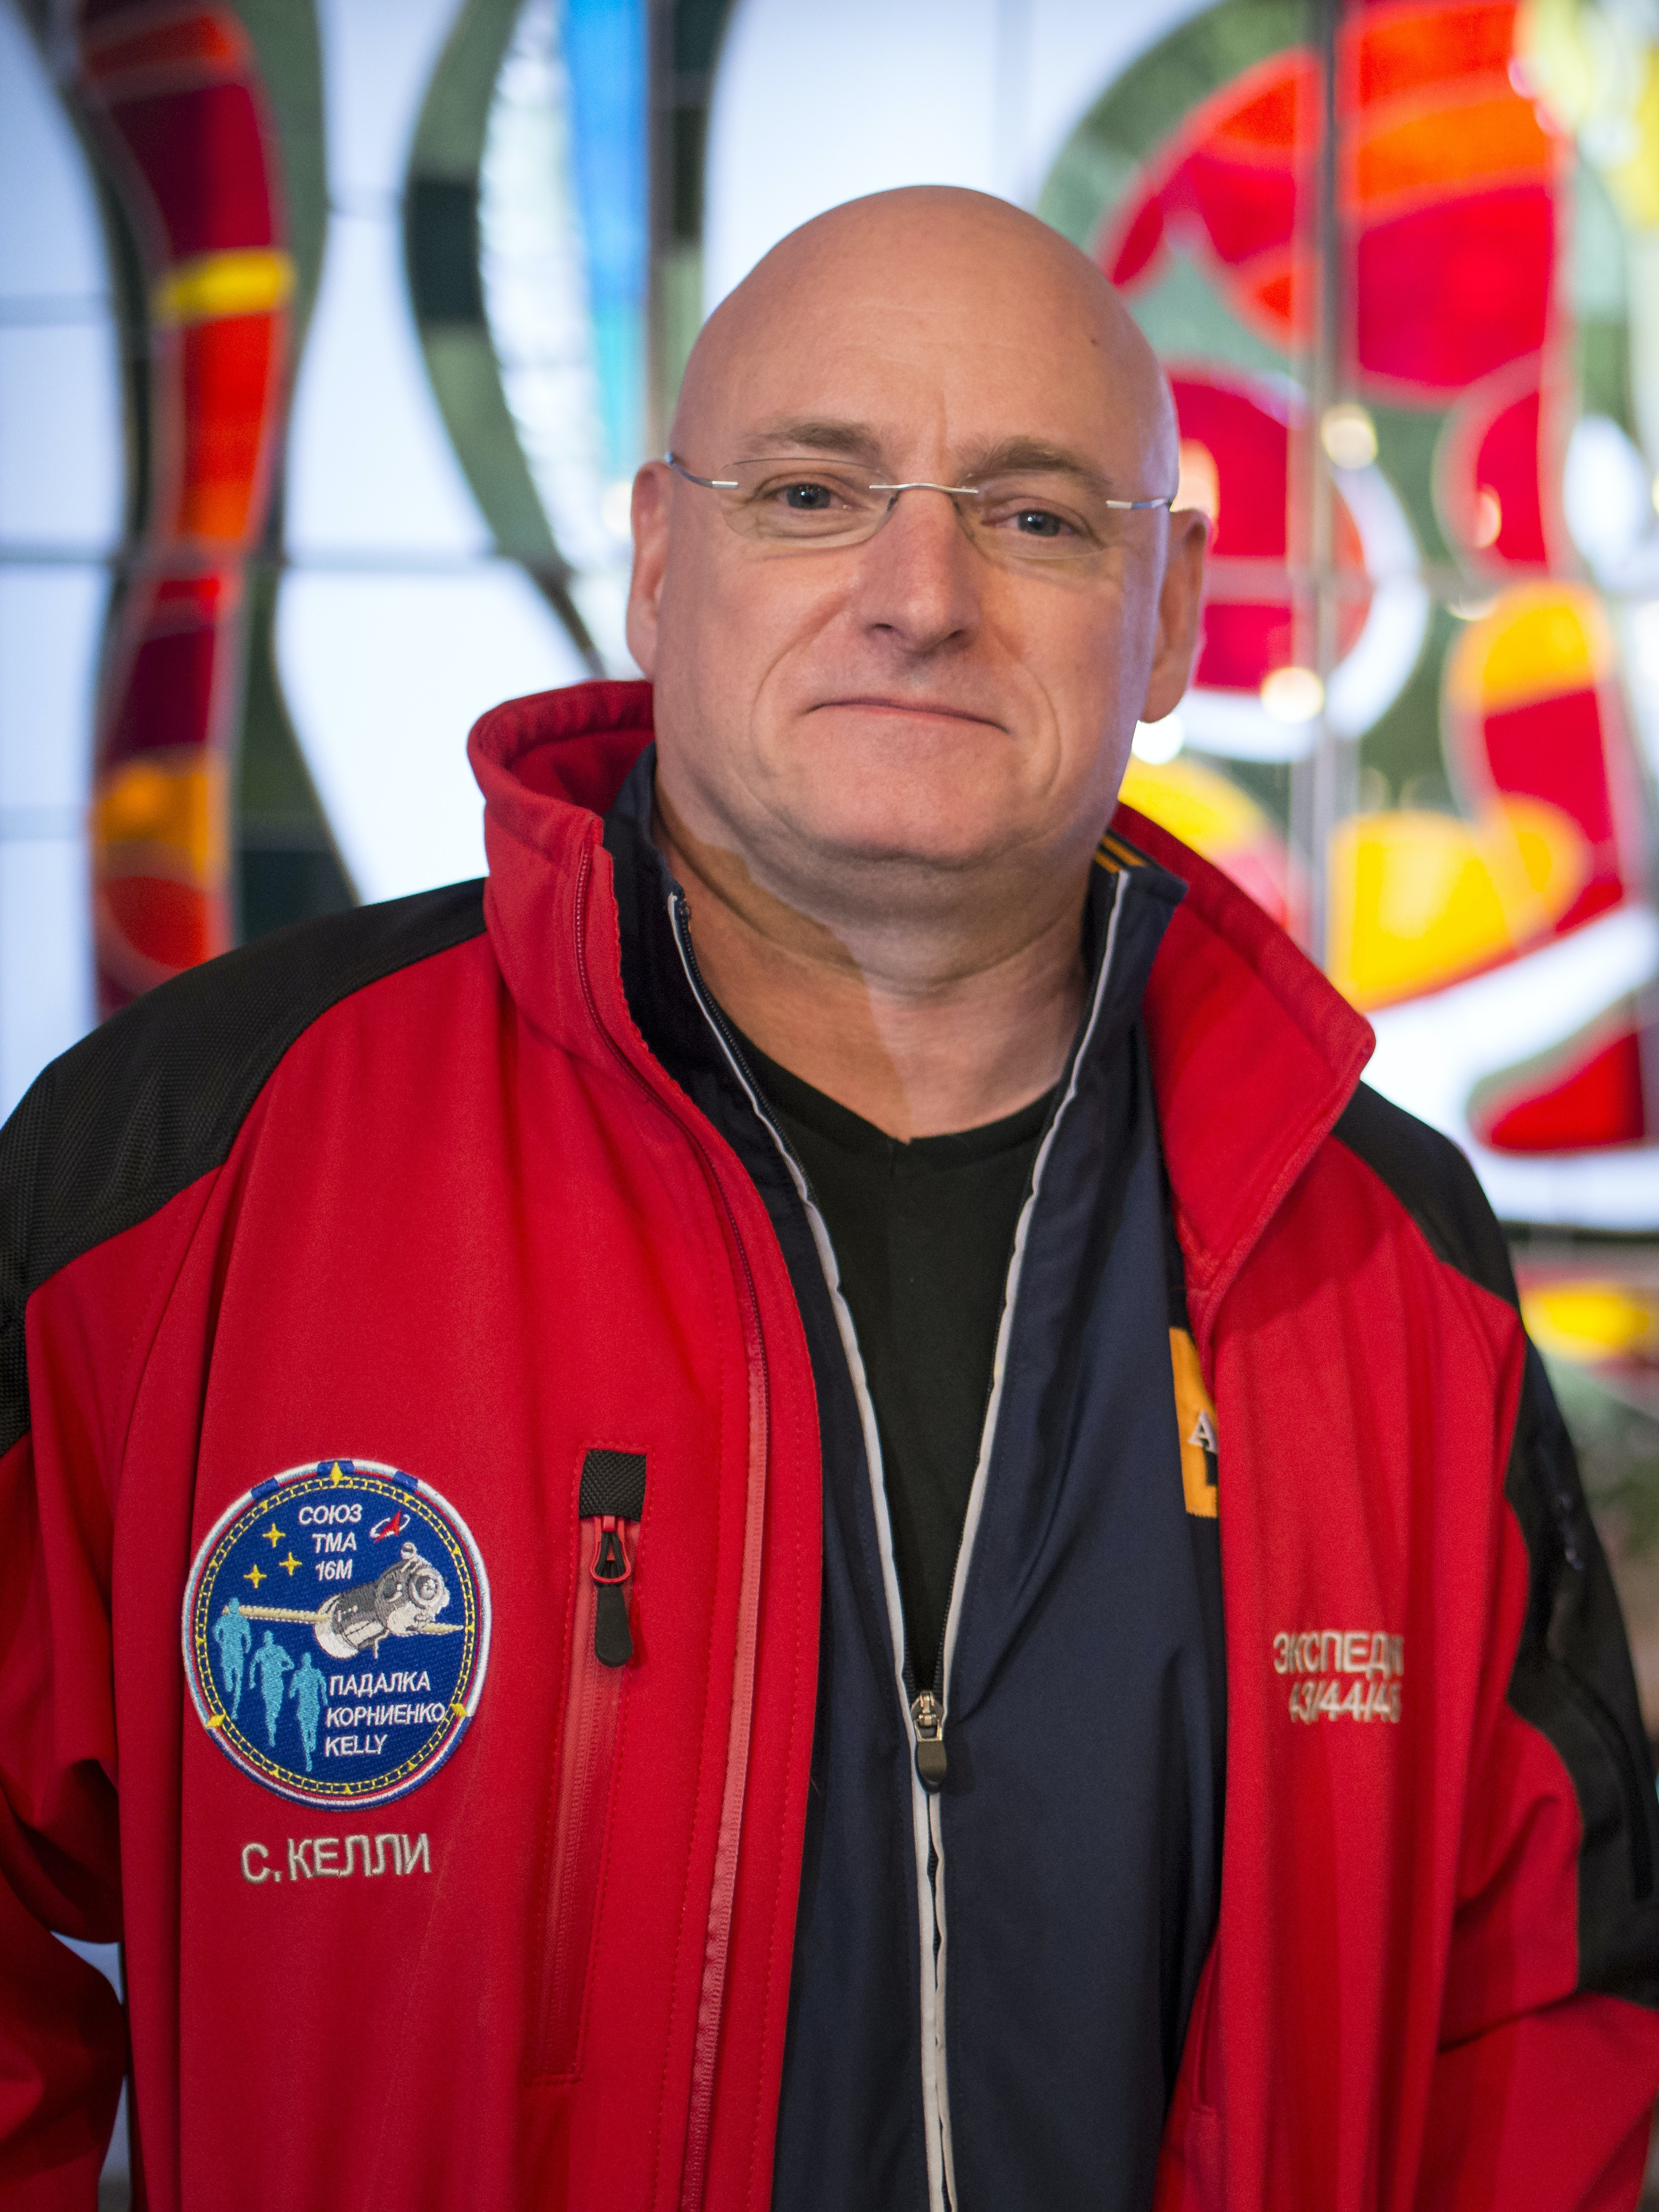 NASA astronaut Scott Kelly became taller than identical twin Mark while in space - but not for the reasons we thought.